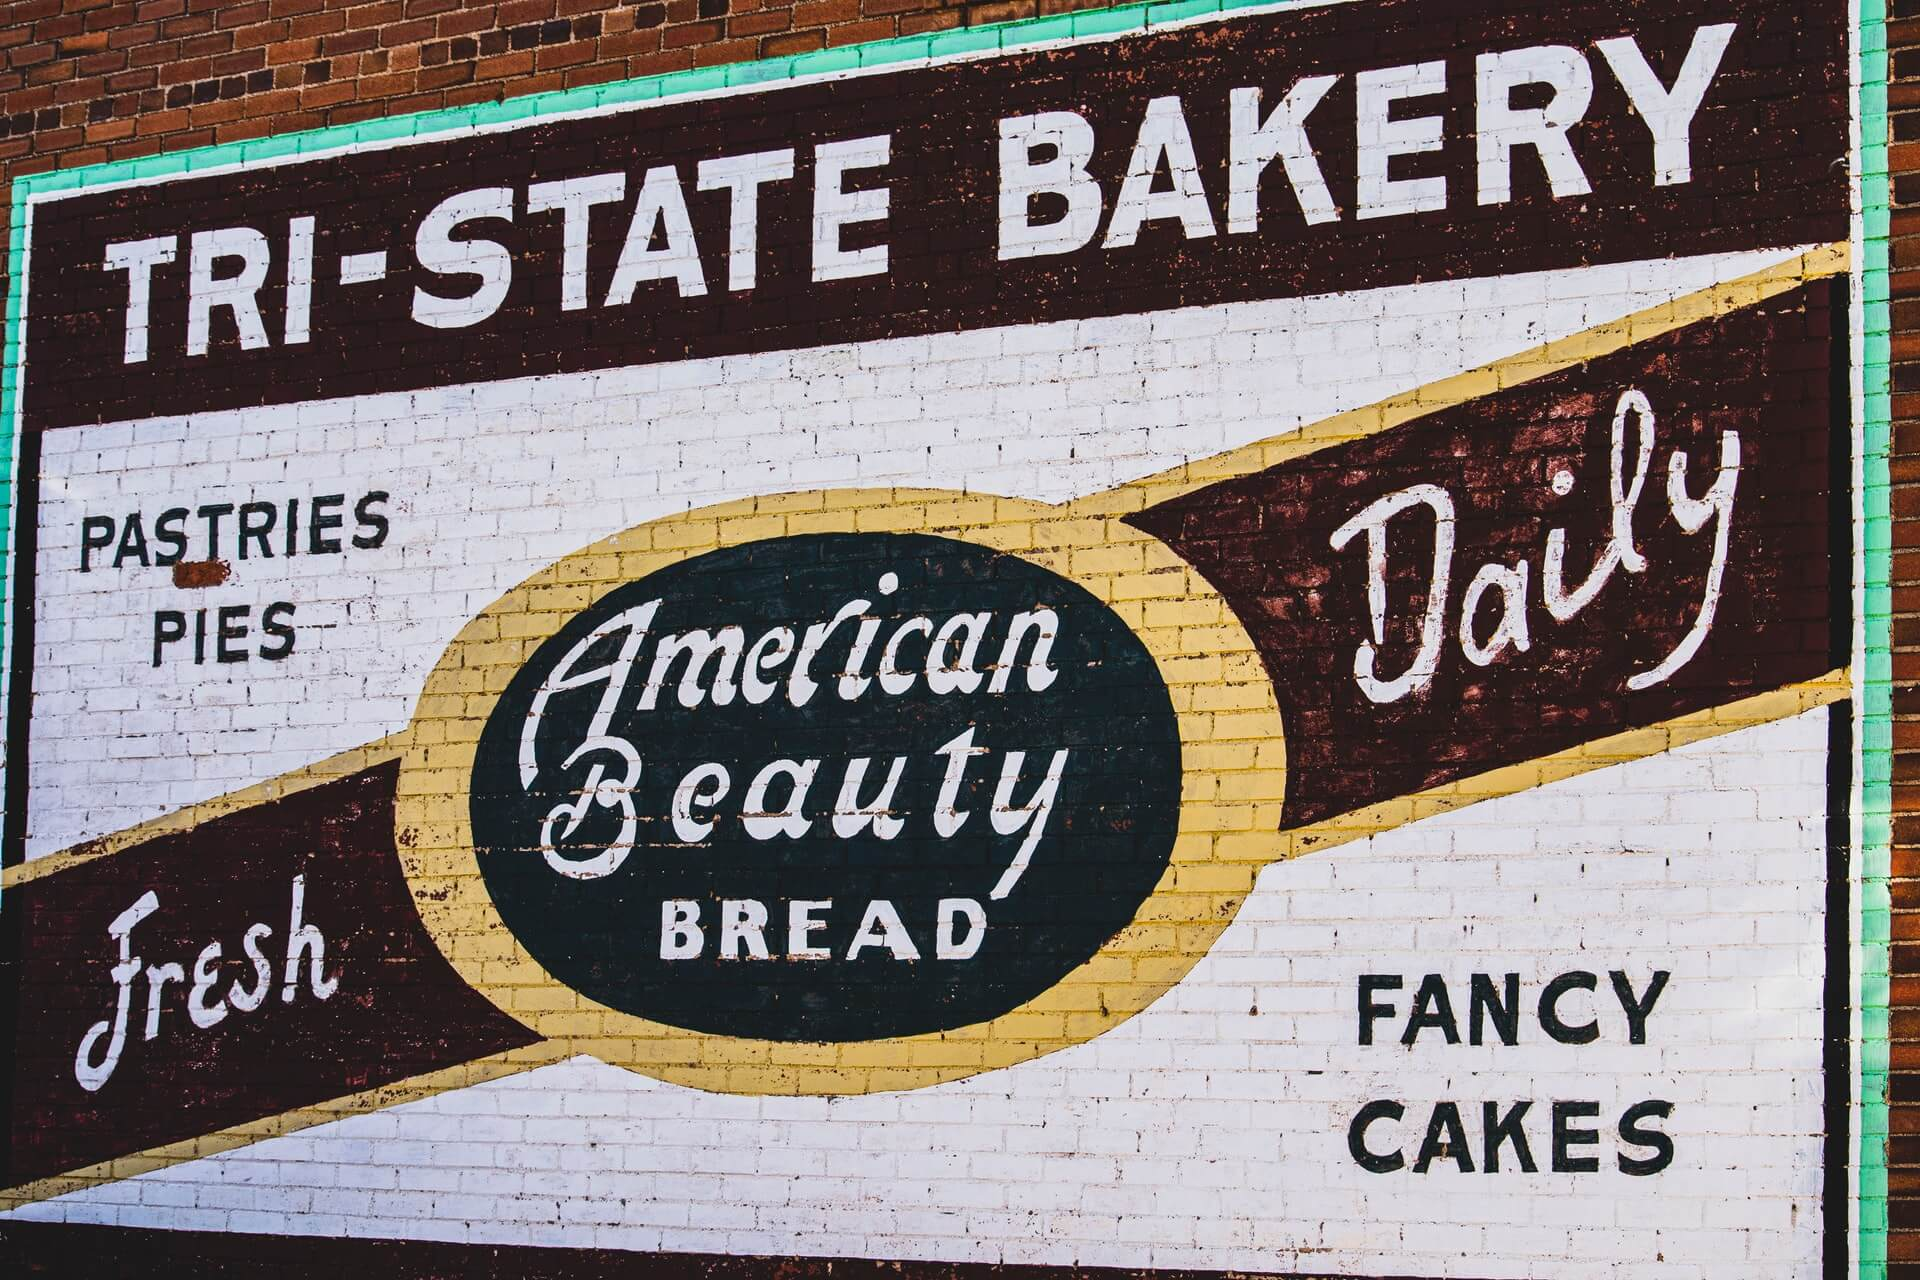 A painted advertisement for a bakery on a brick wall.